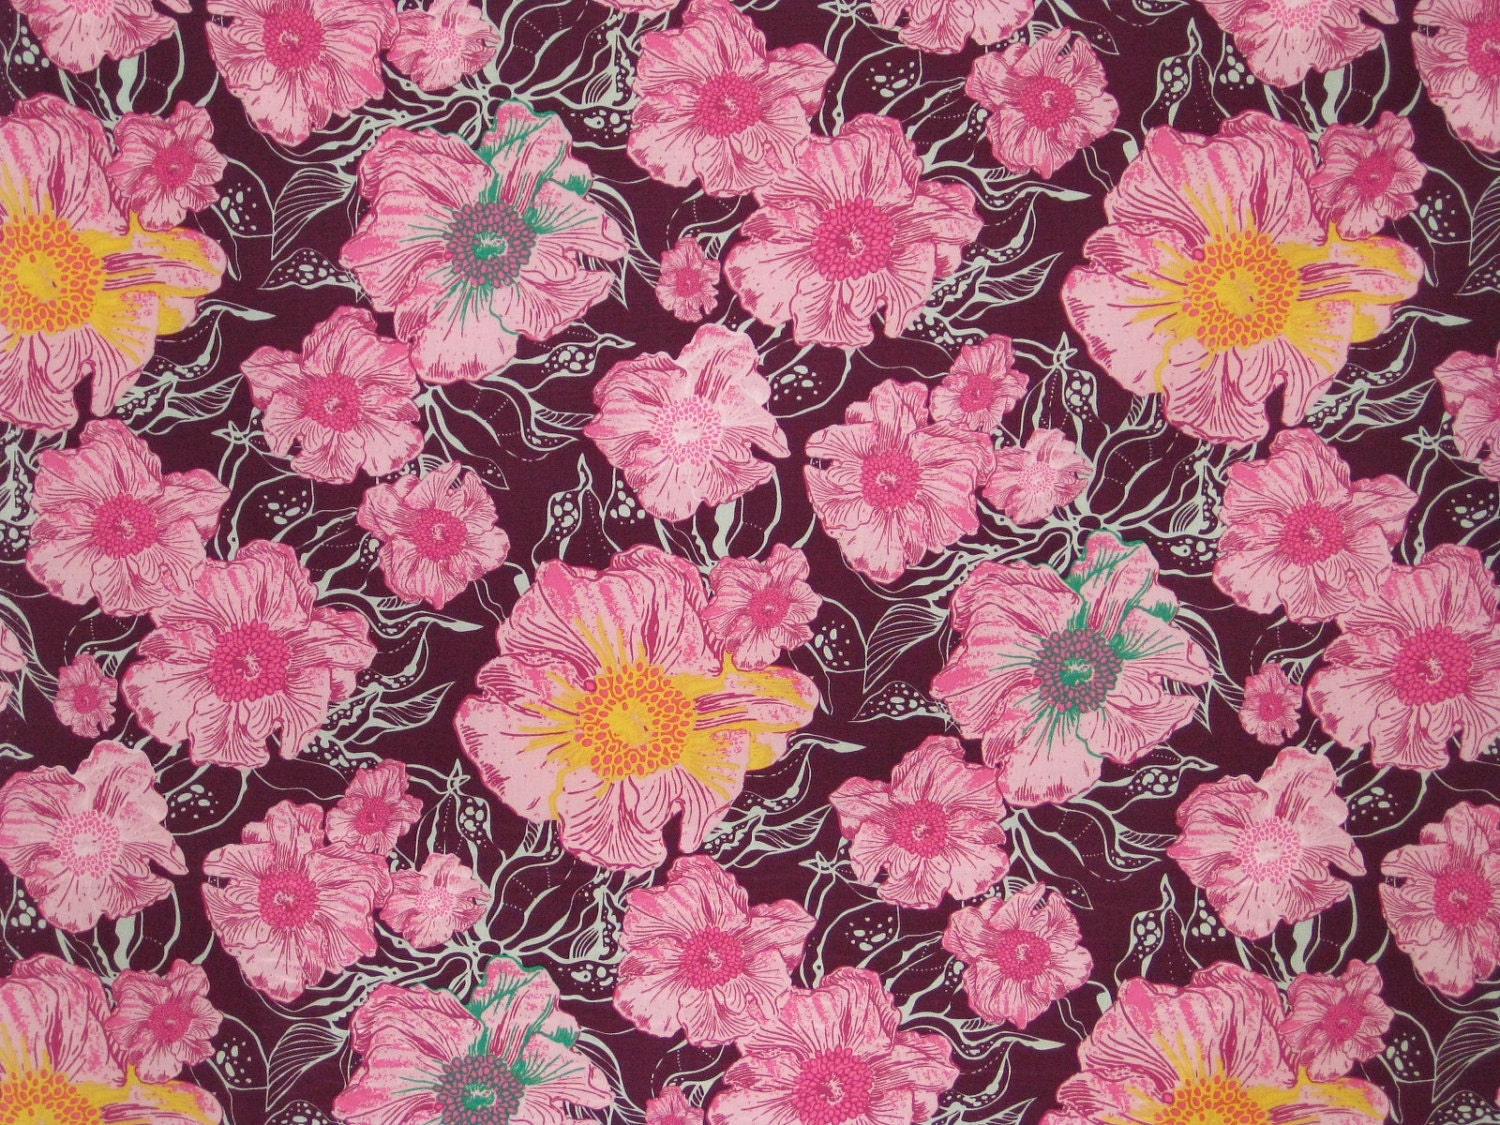 1 Yard of Lush Foliage Plum Cotton Fabric from the Pat Bravo Hyperreal Garden Collection for Art Gallery Fabric HG8401